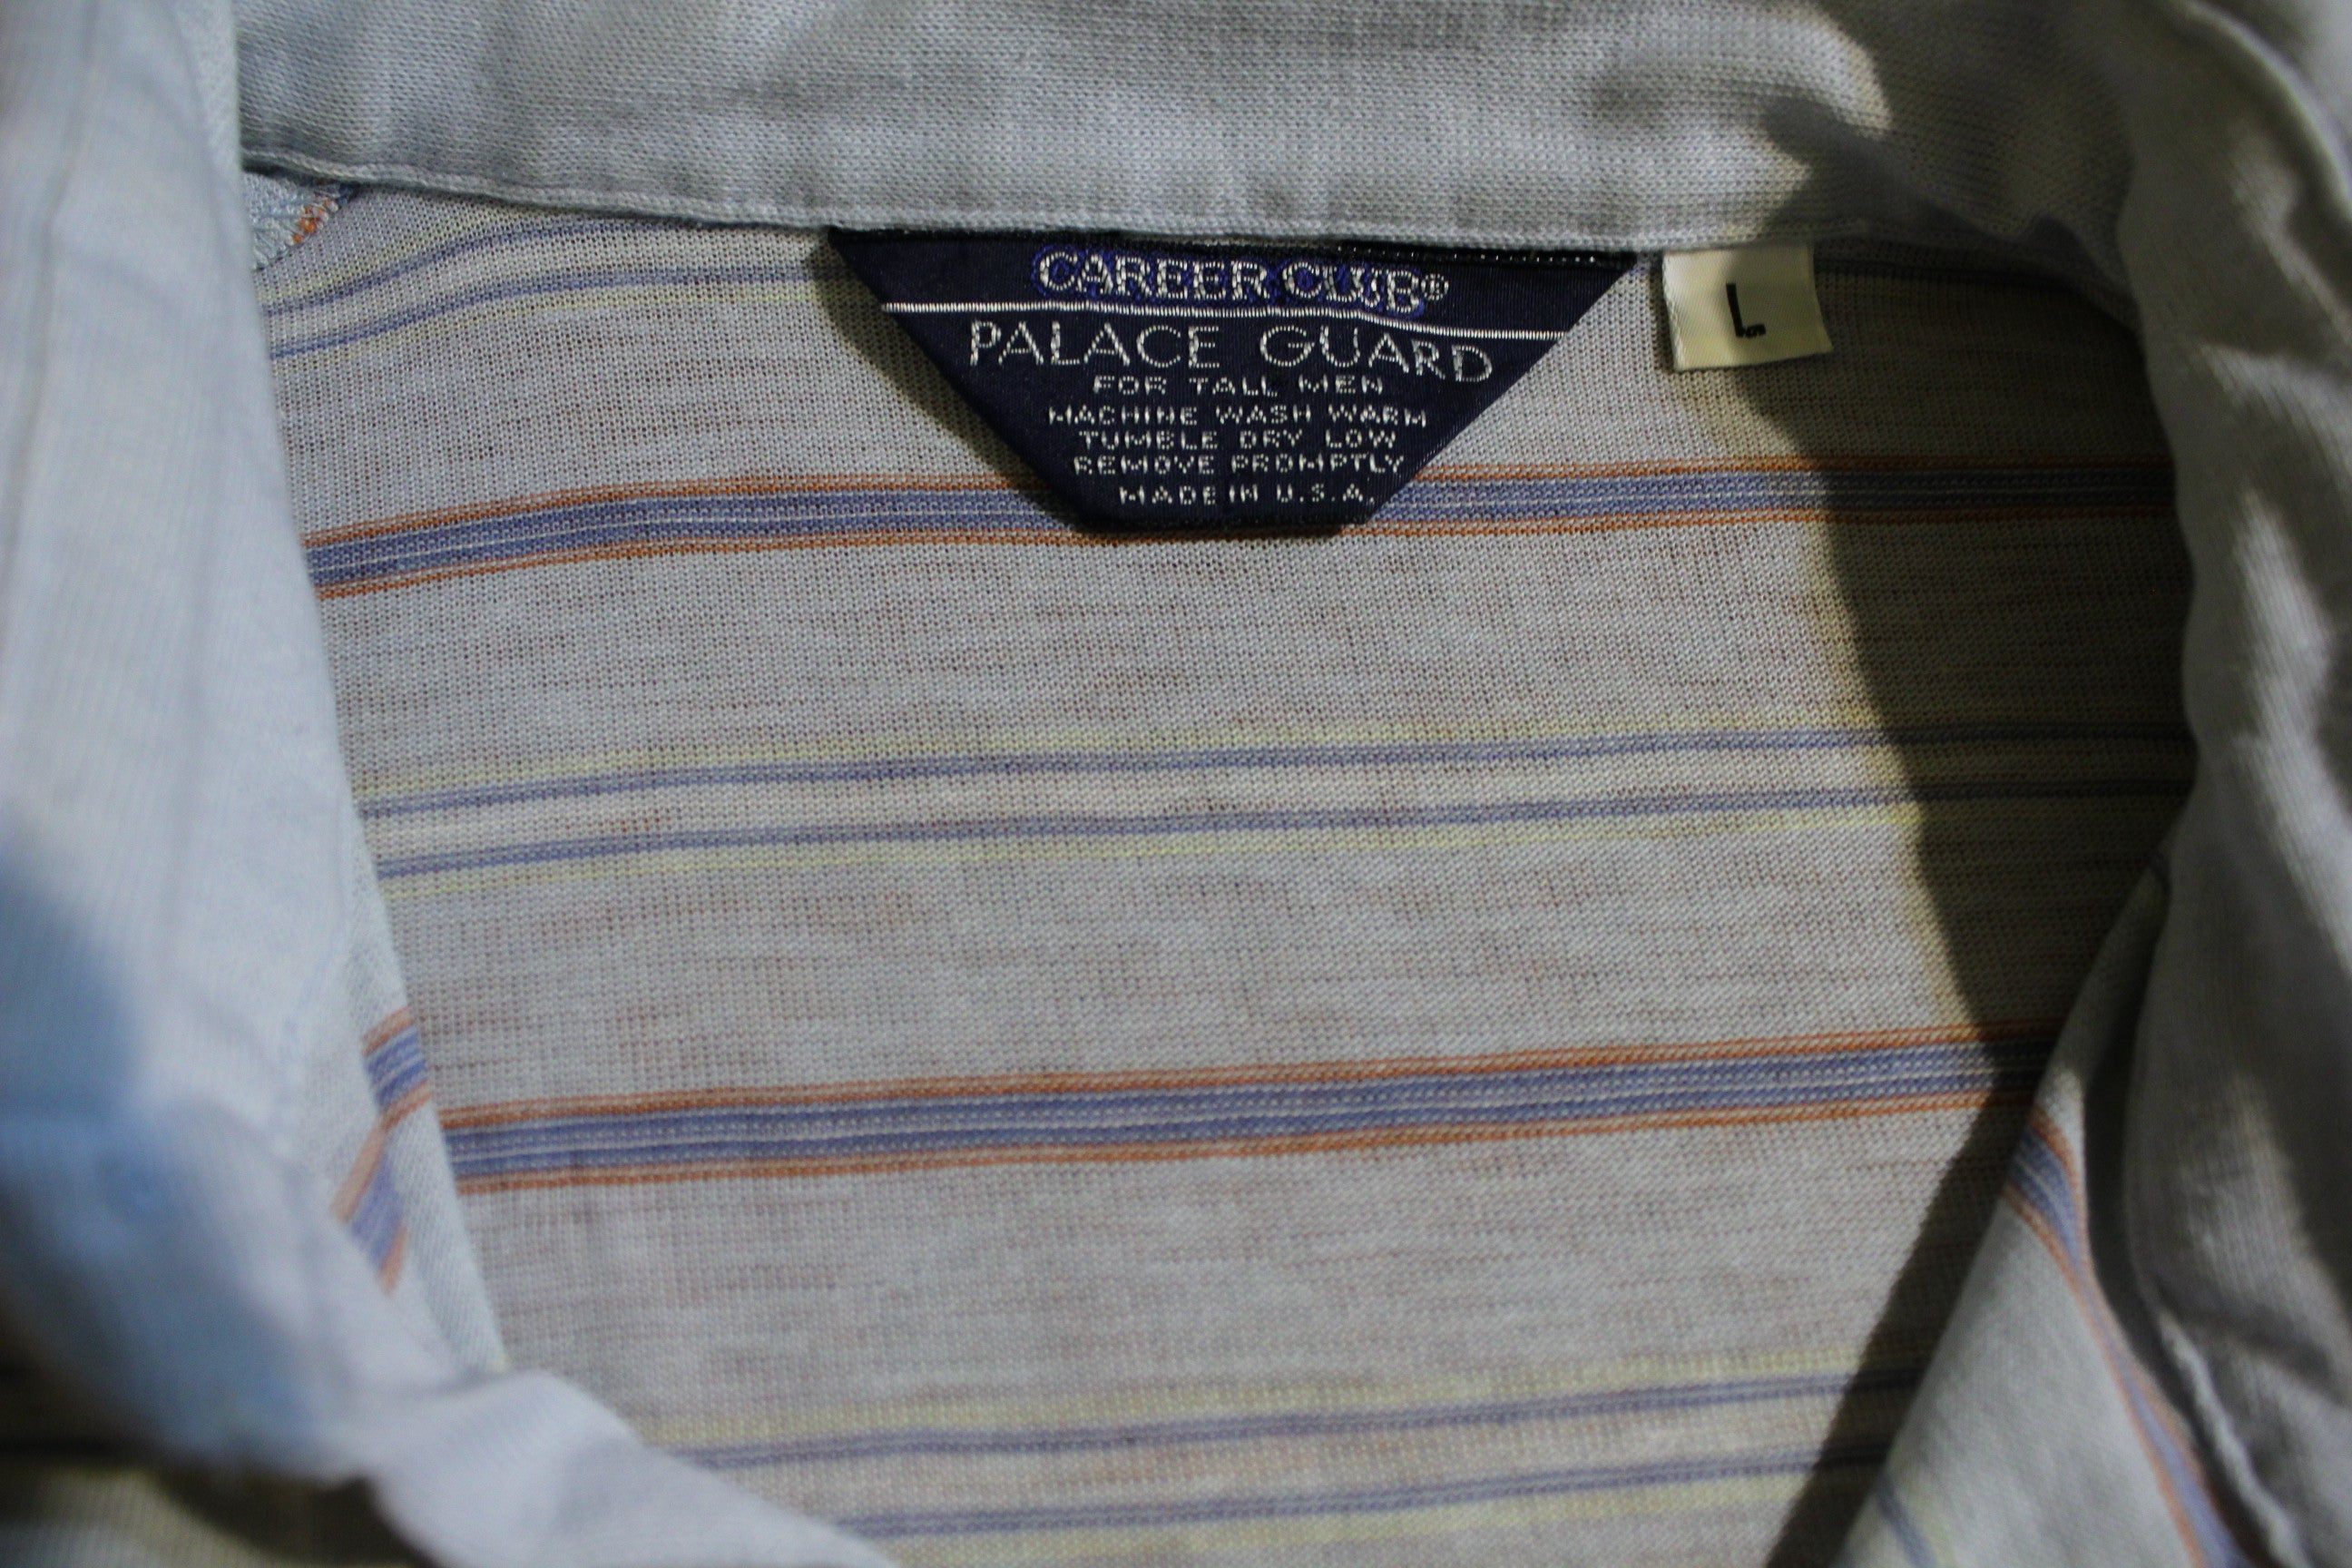 Career Club Palace Guard Vintage Tall Polo Shirt. 1980's Striped Large.